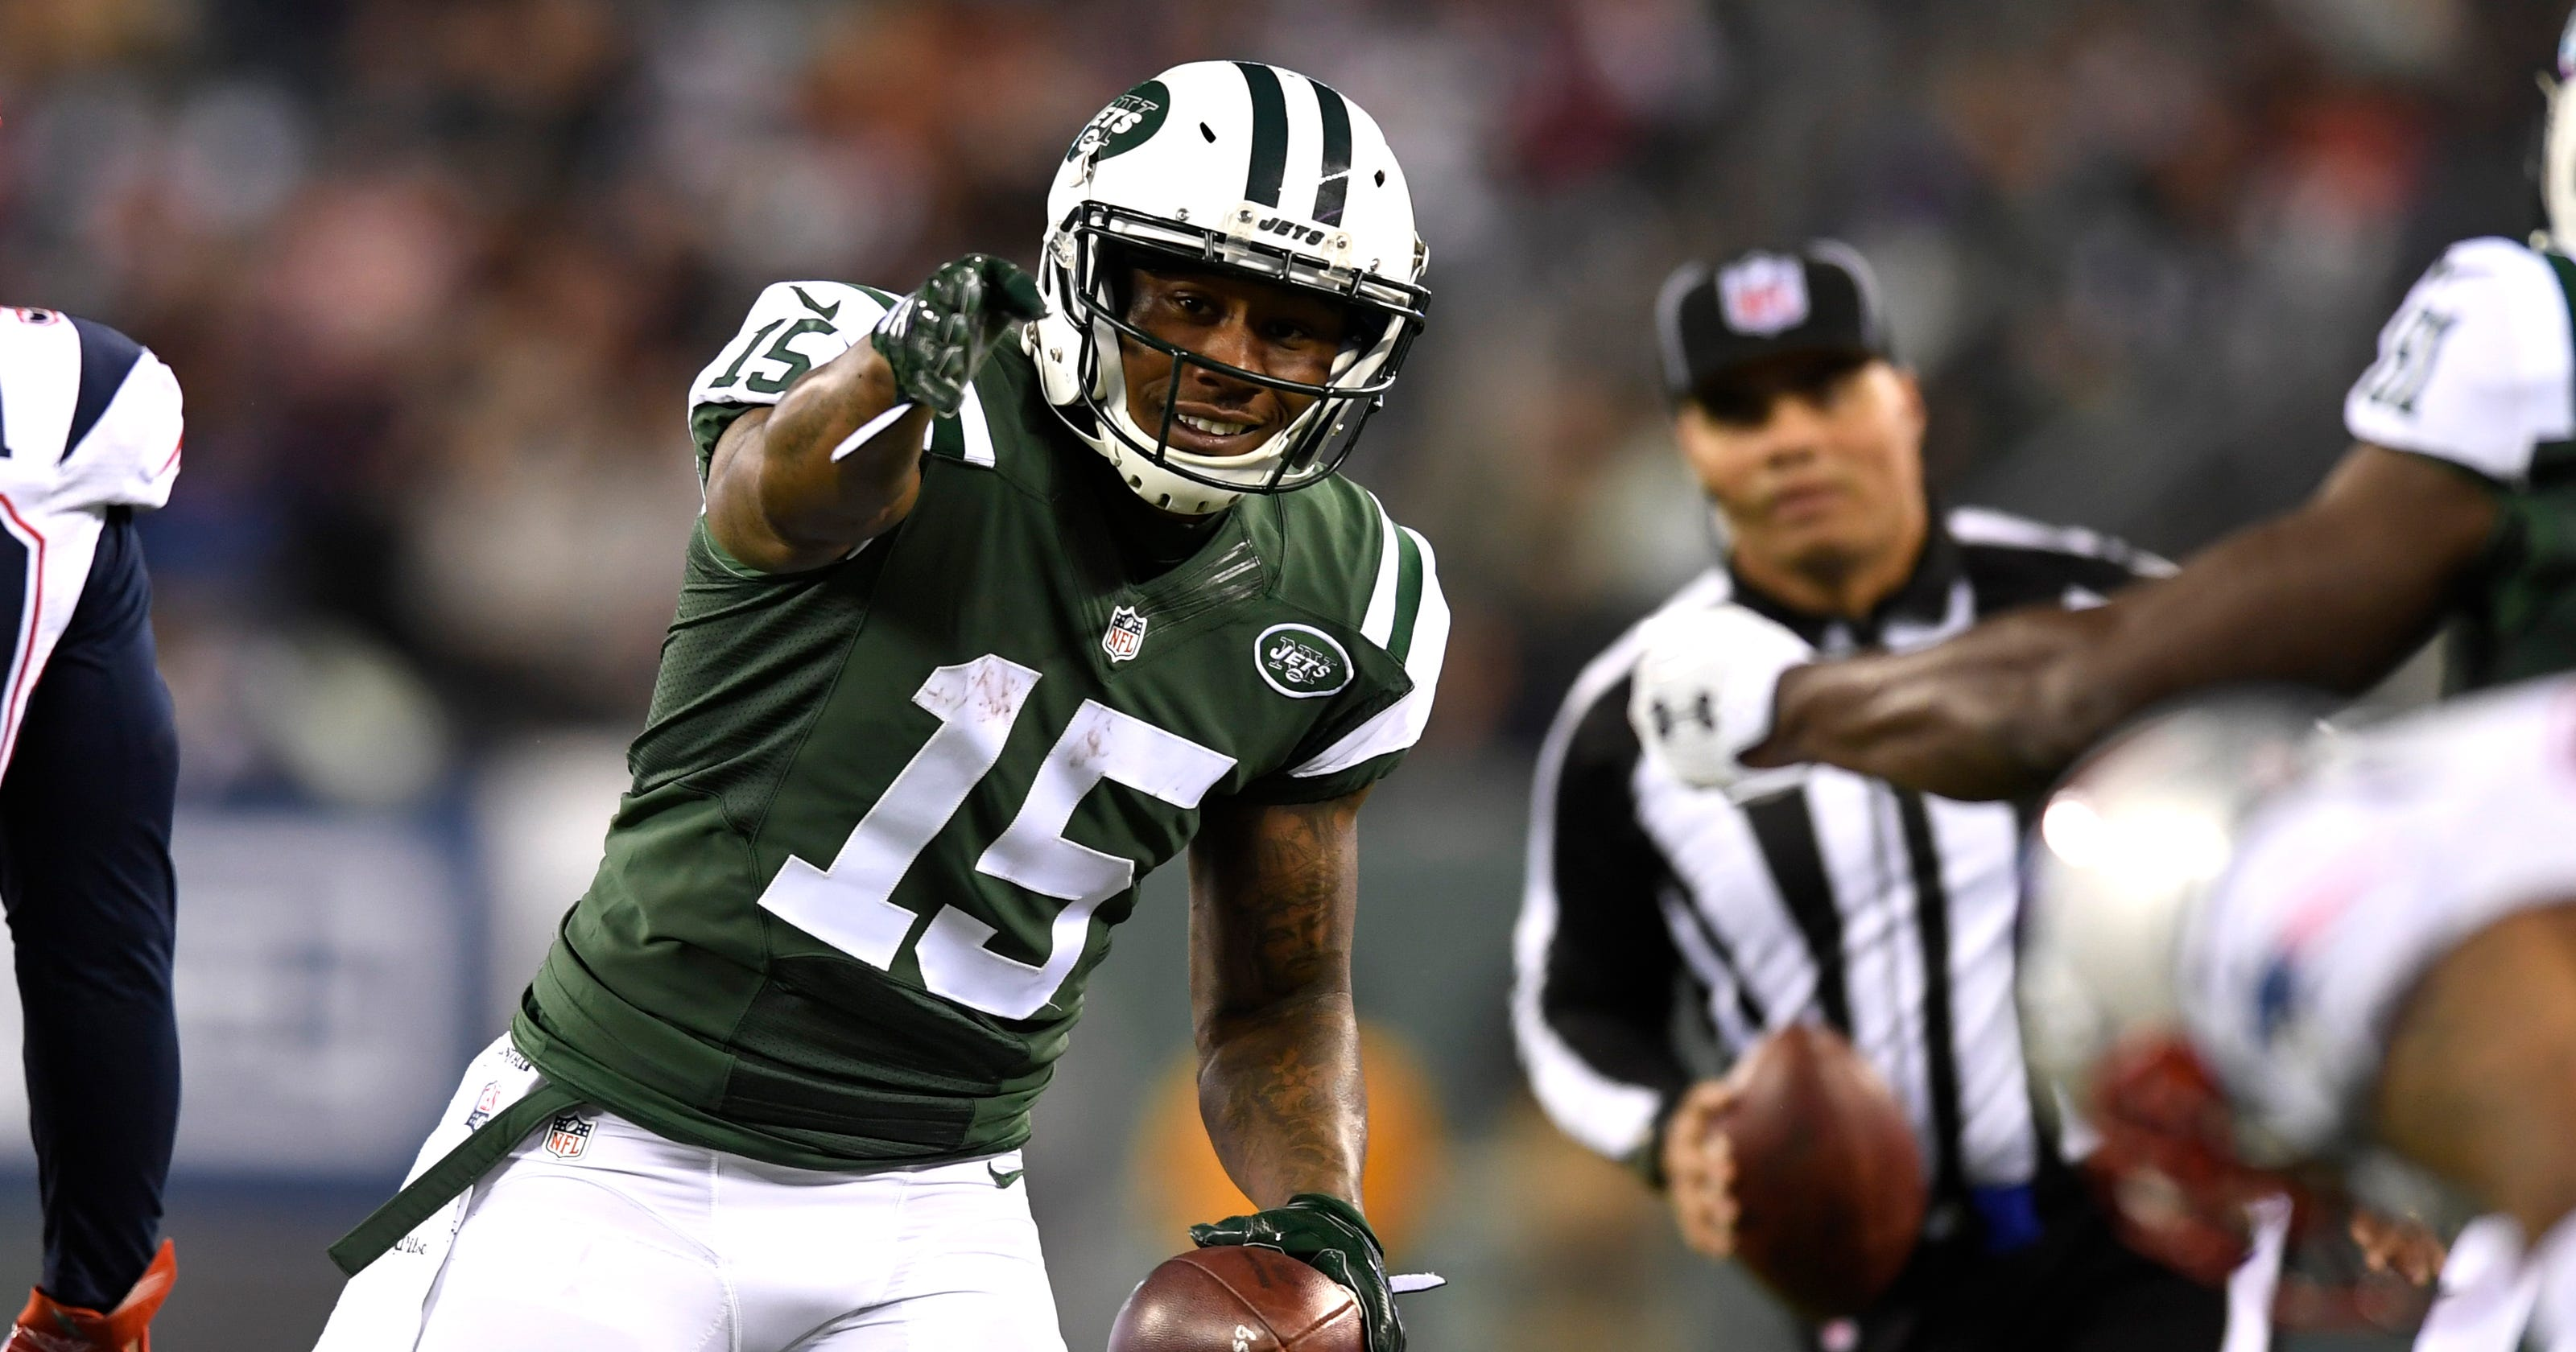 online store 28a0d c504a Jets WR Brandon Marshall won't play vs Bills